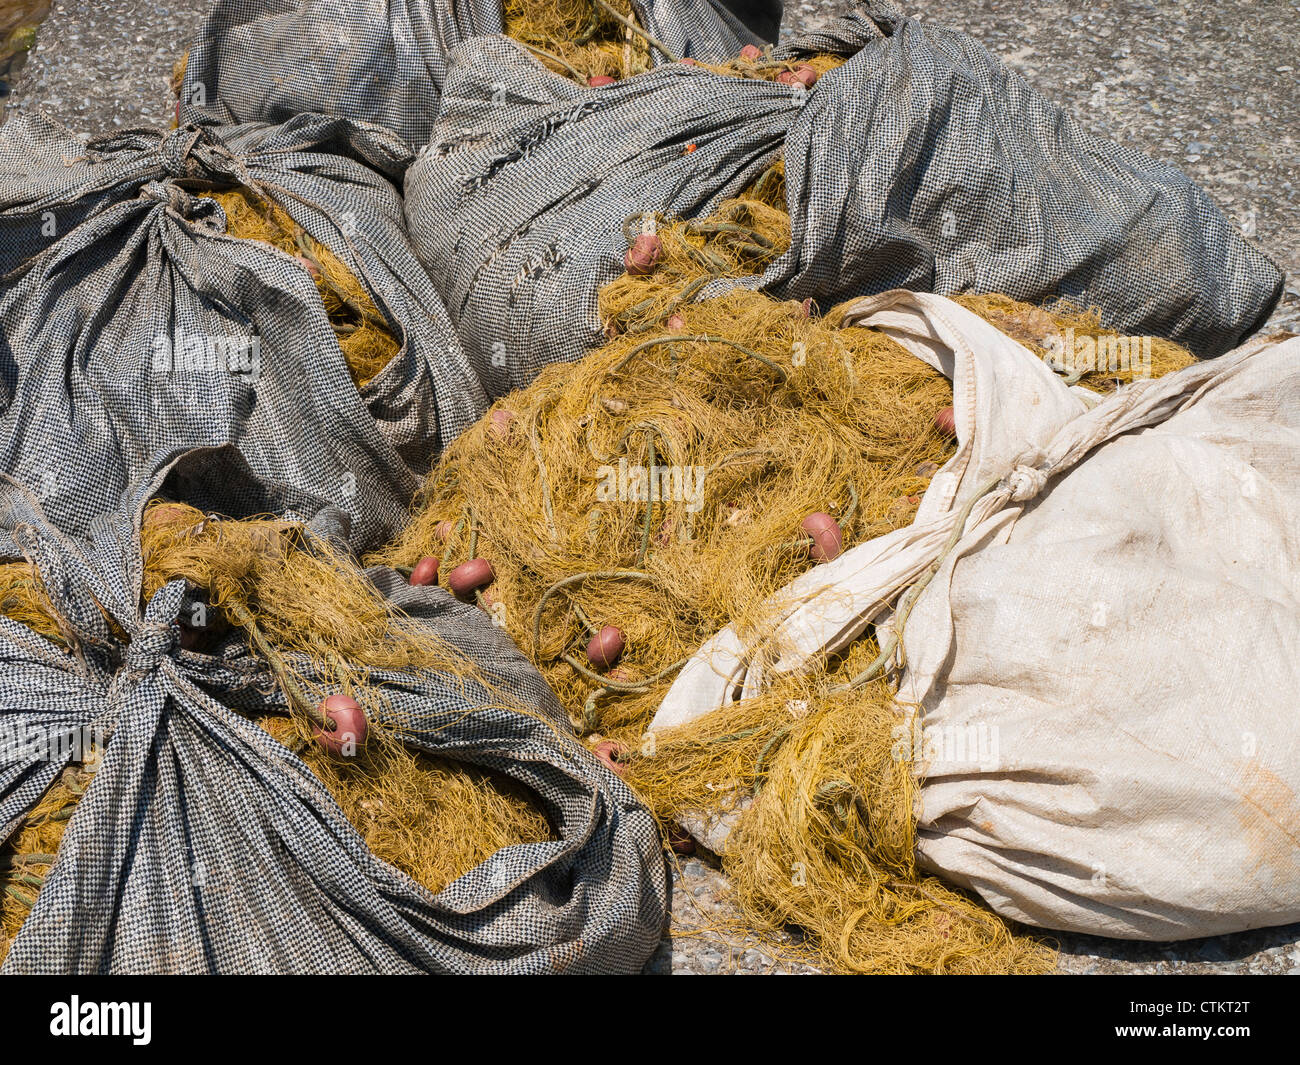 Fishing nets wrapped up in sacs - Stock Image